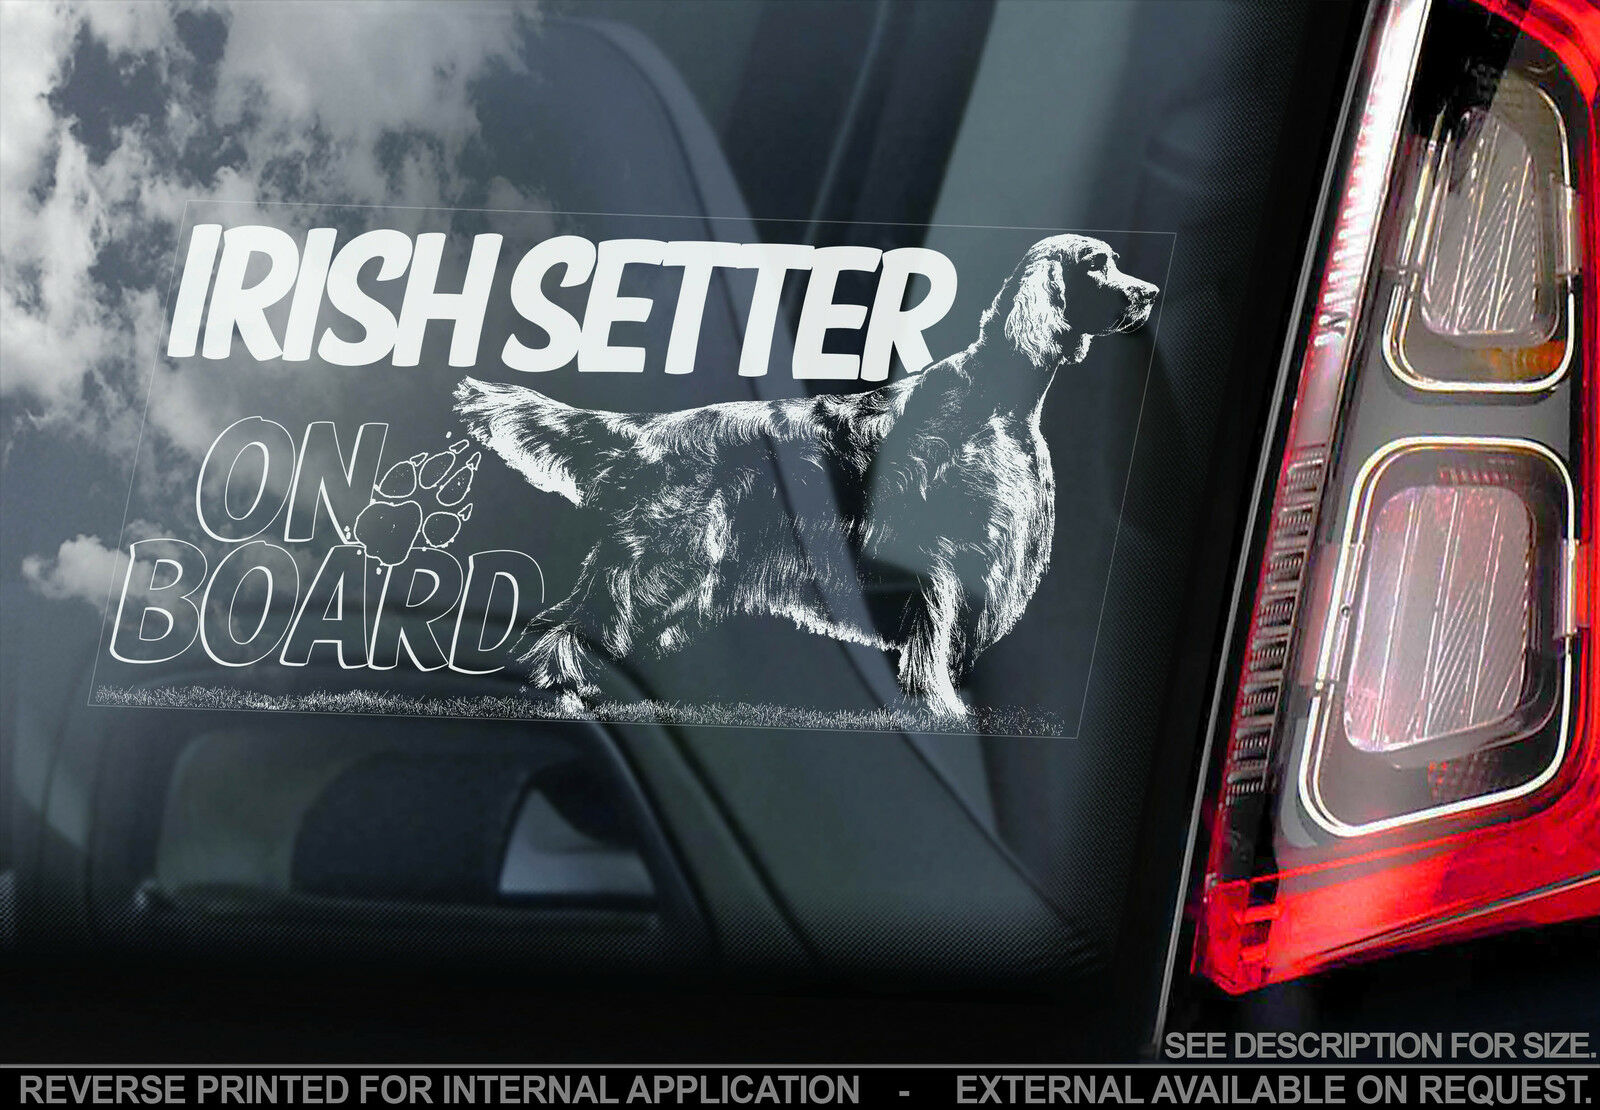 ENGLISH SETTER ON BOARD Car Sticker By Starprint